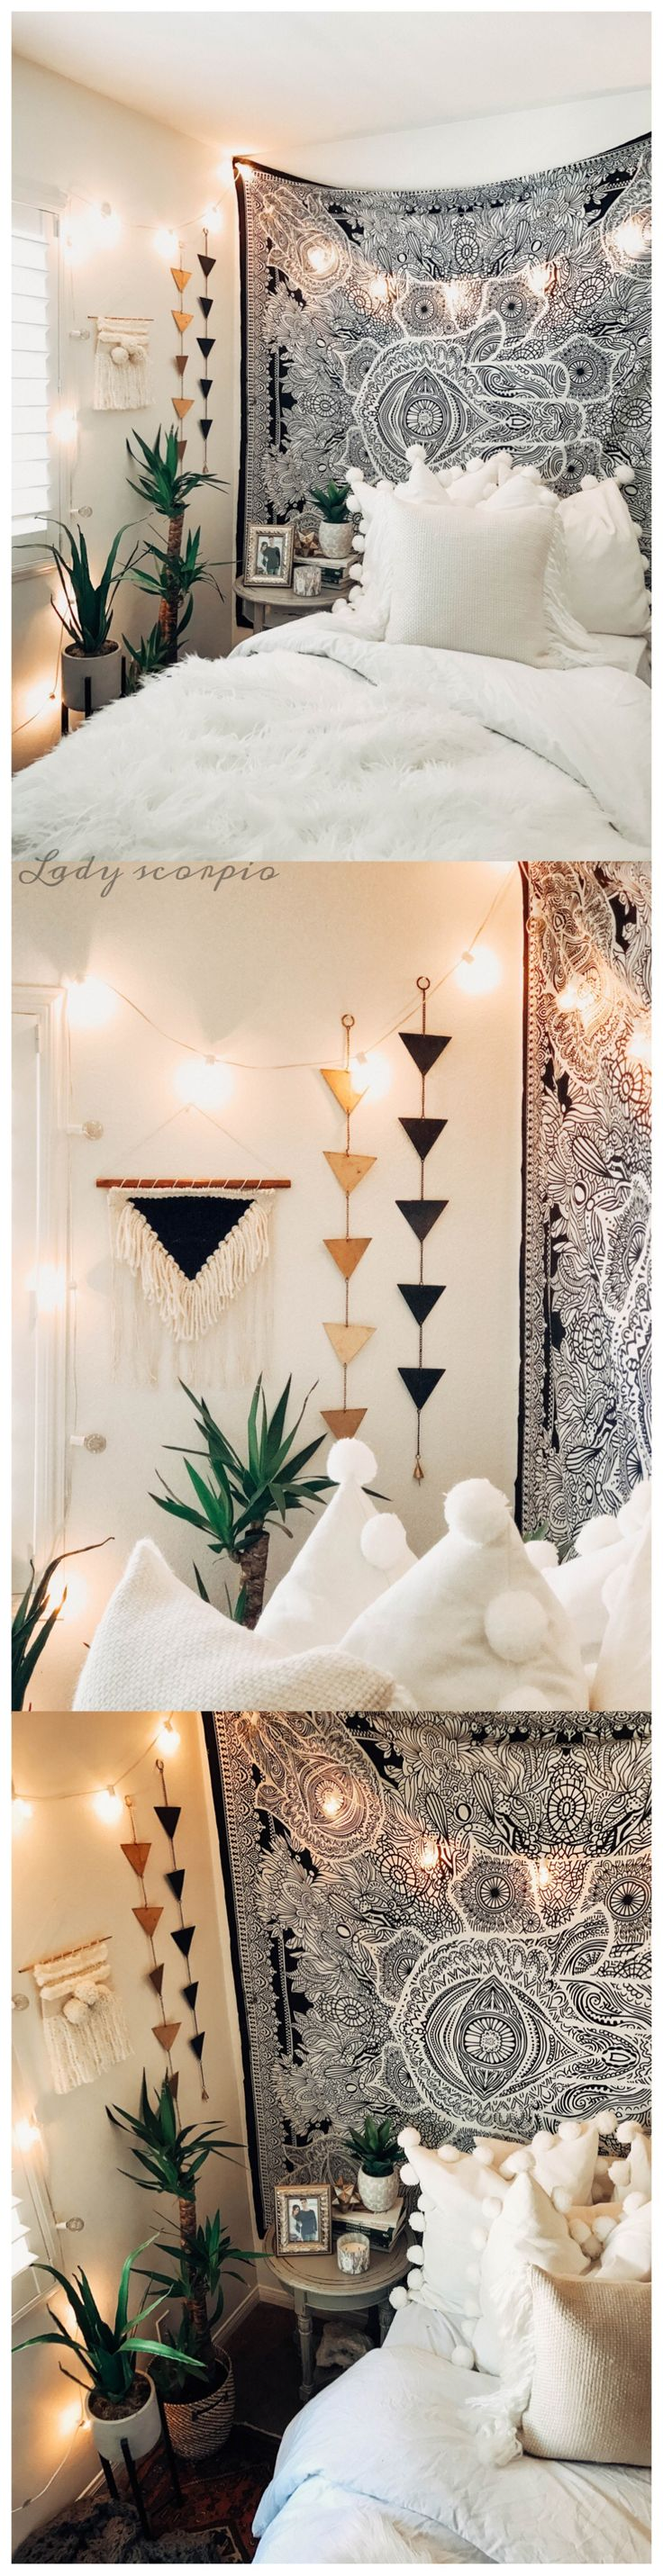 Room inspo❤️ Design by @kaitlynjohnsondesign ☽ ✩ Save 25% off all orders with code PINTERESTXO at checkout | Shop Now LadyScorpio101.com | @LadyScorpio101 |